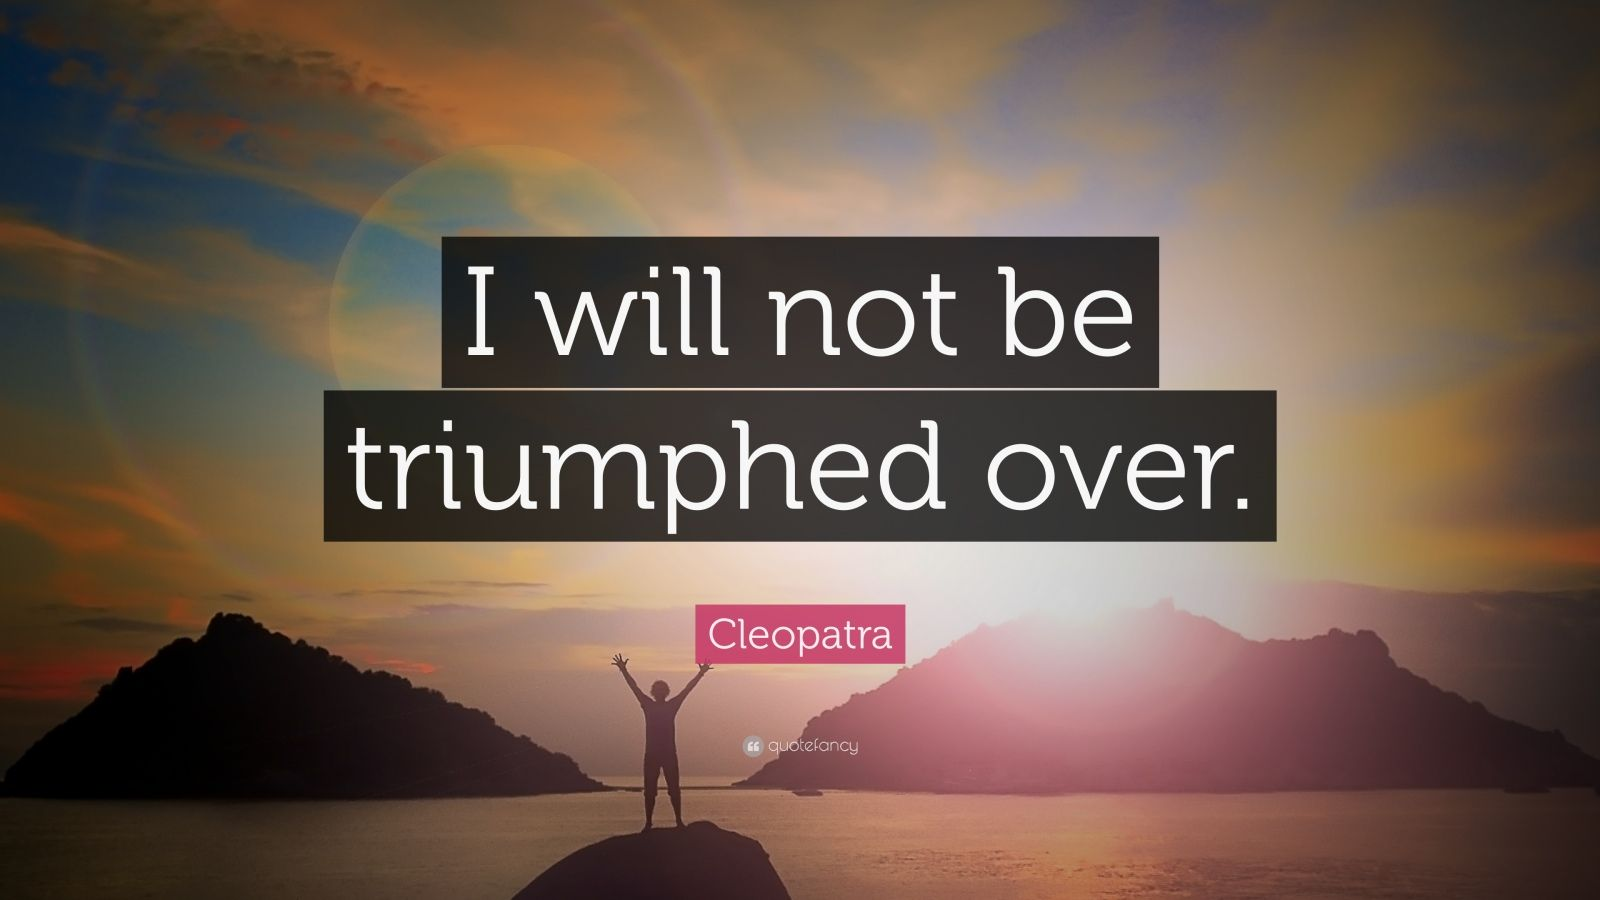 Motivational Wallpapers Without Quotes Cleopatra Quotes 8 Wallpapers Quotefancy